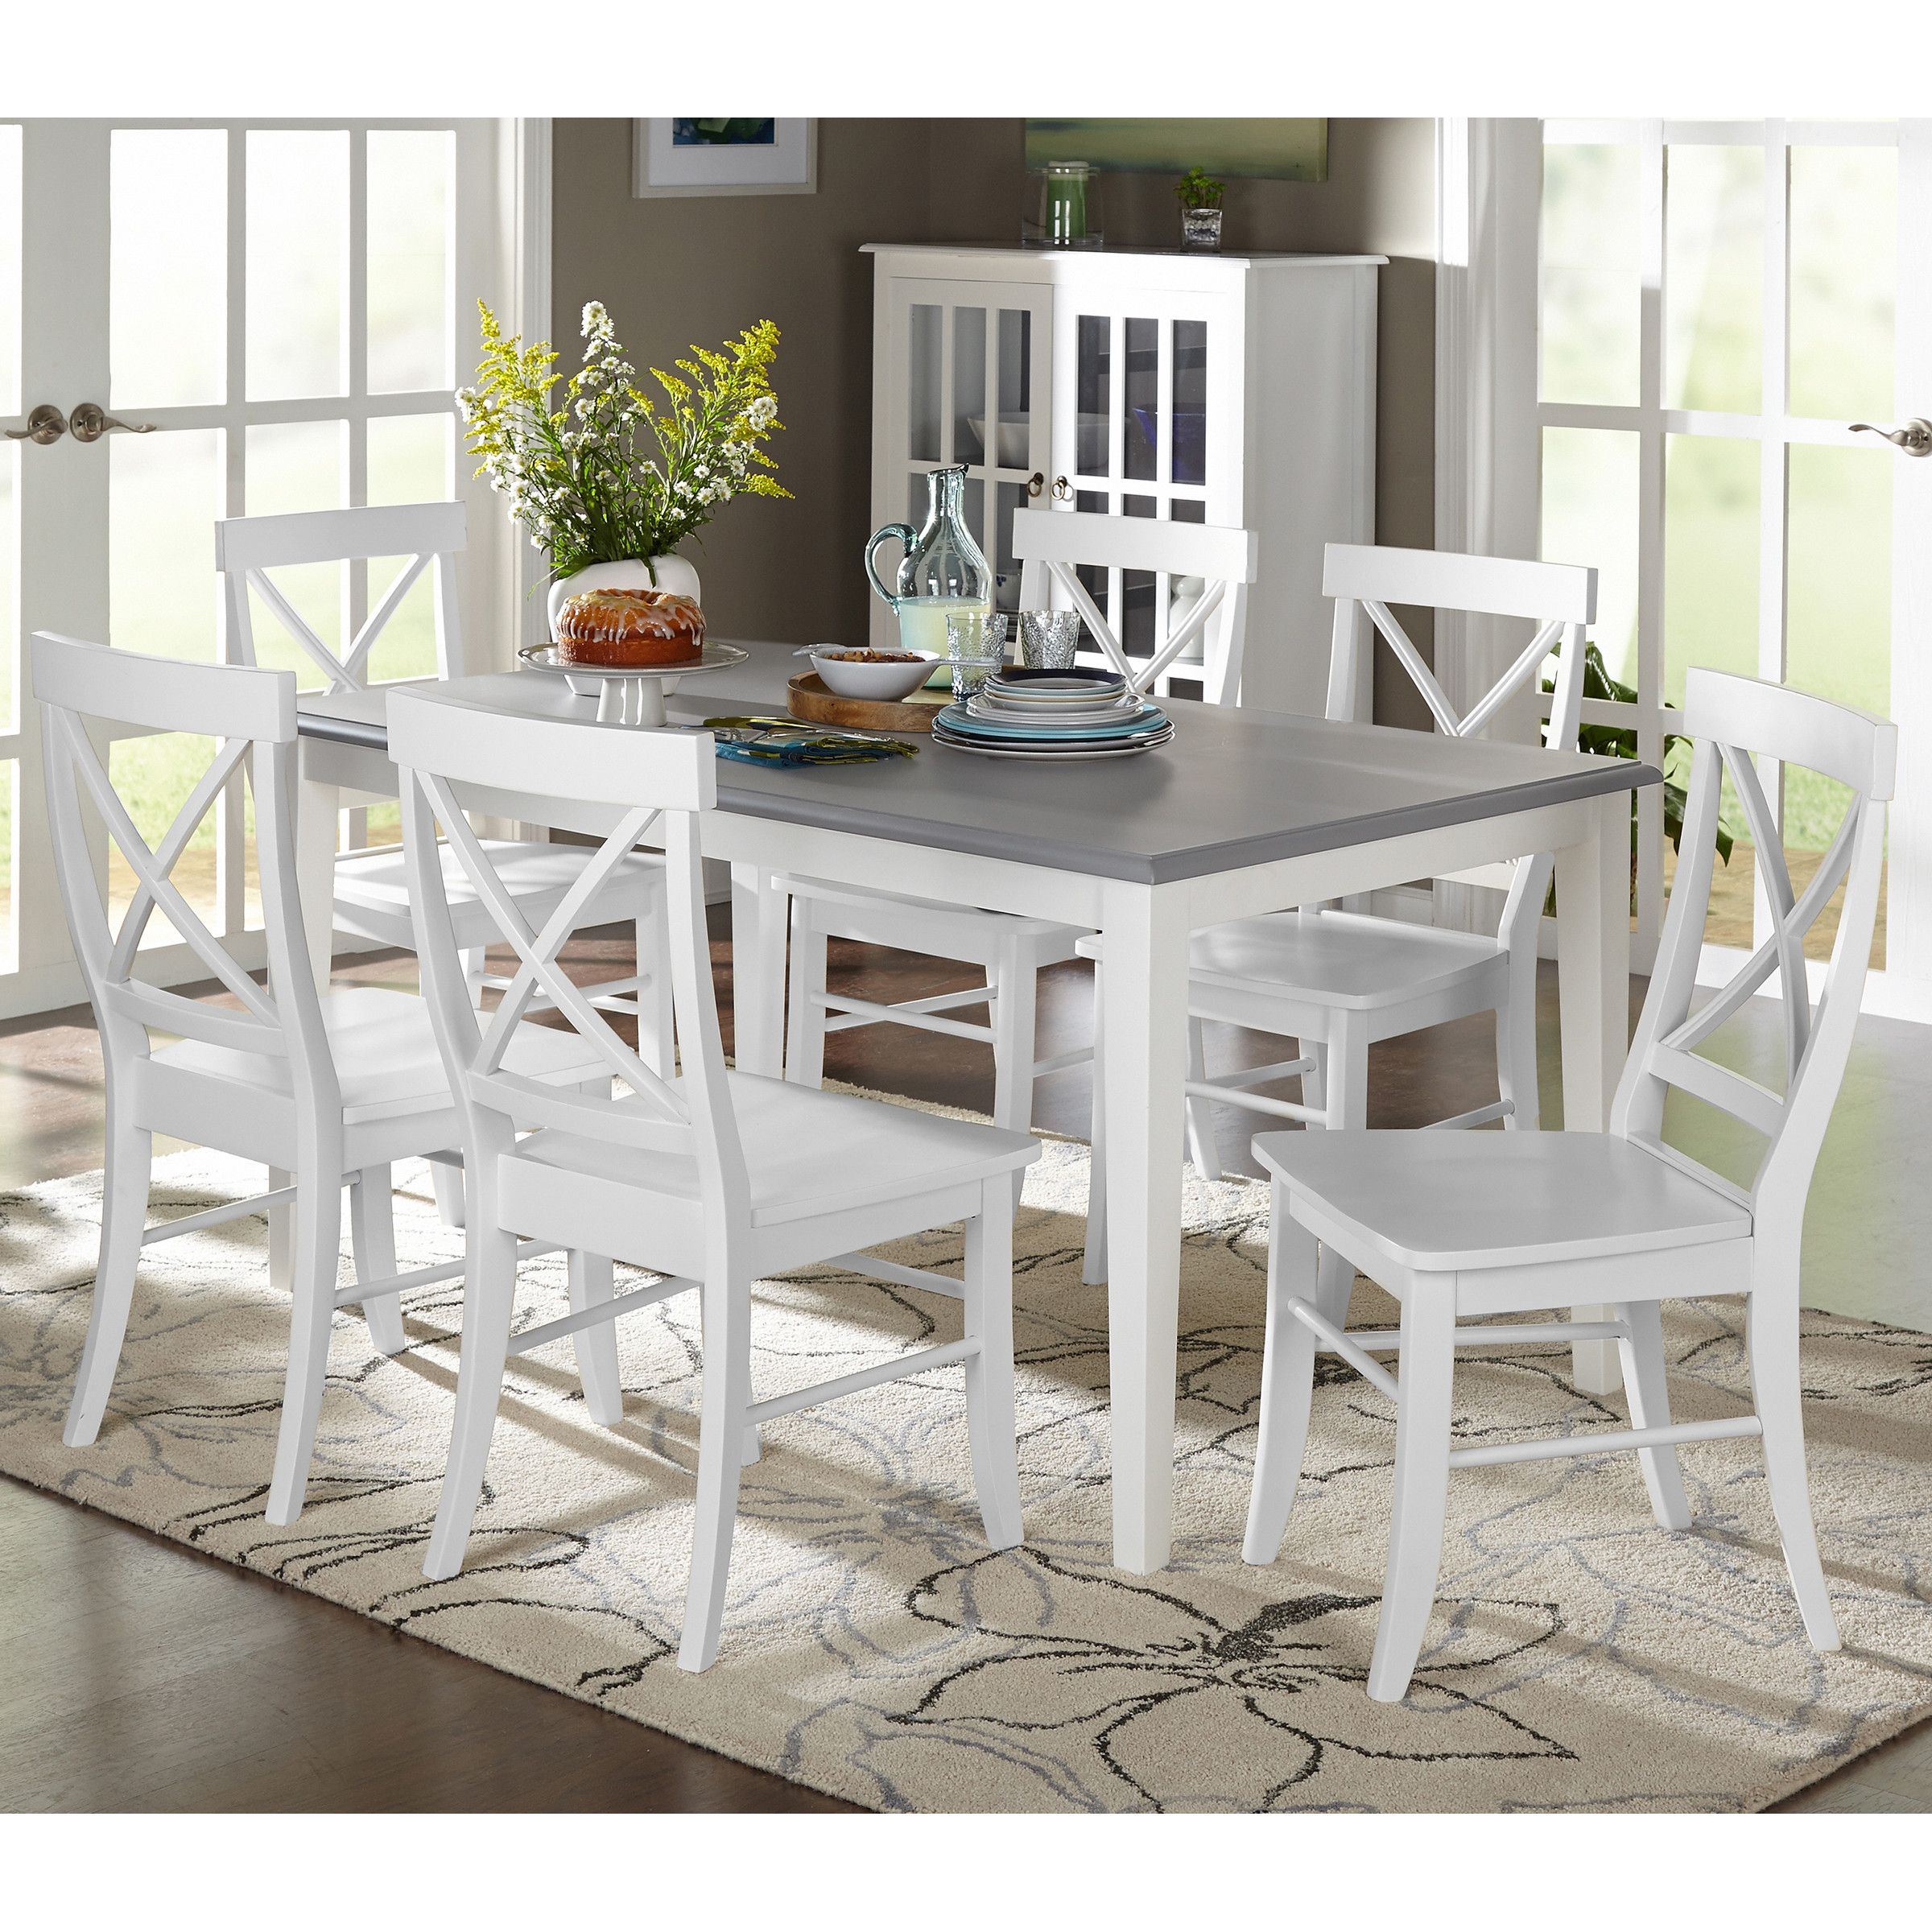 Best Lehigh Acres Dining Set Dining Room Sets Shabby Chic 400 x 300